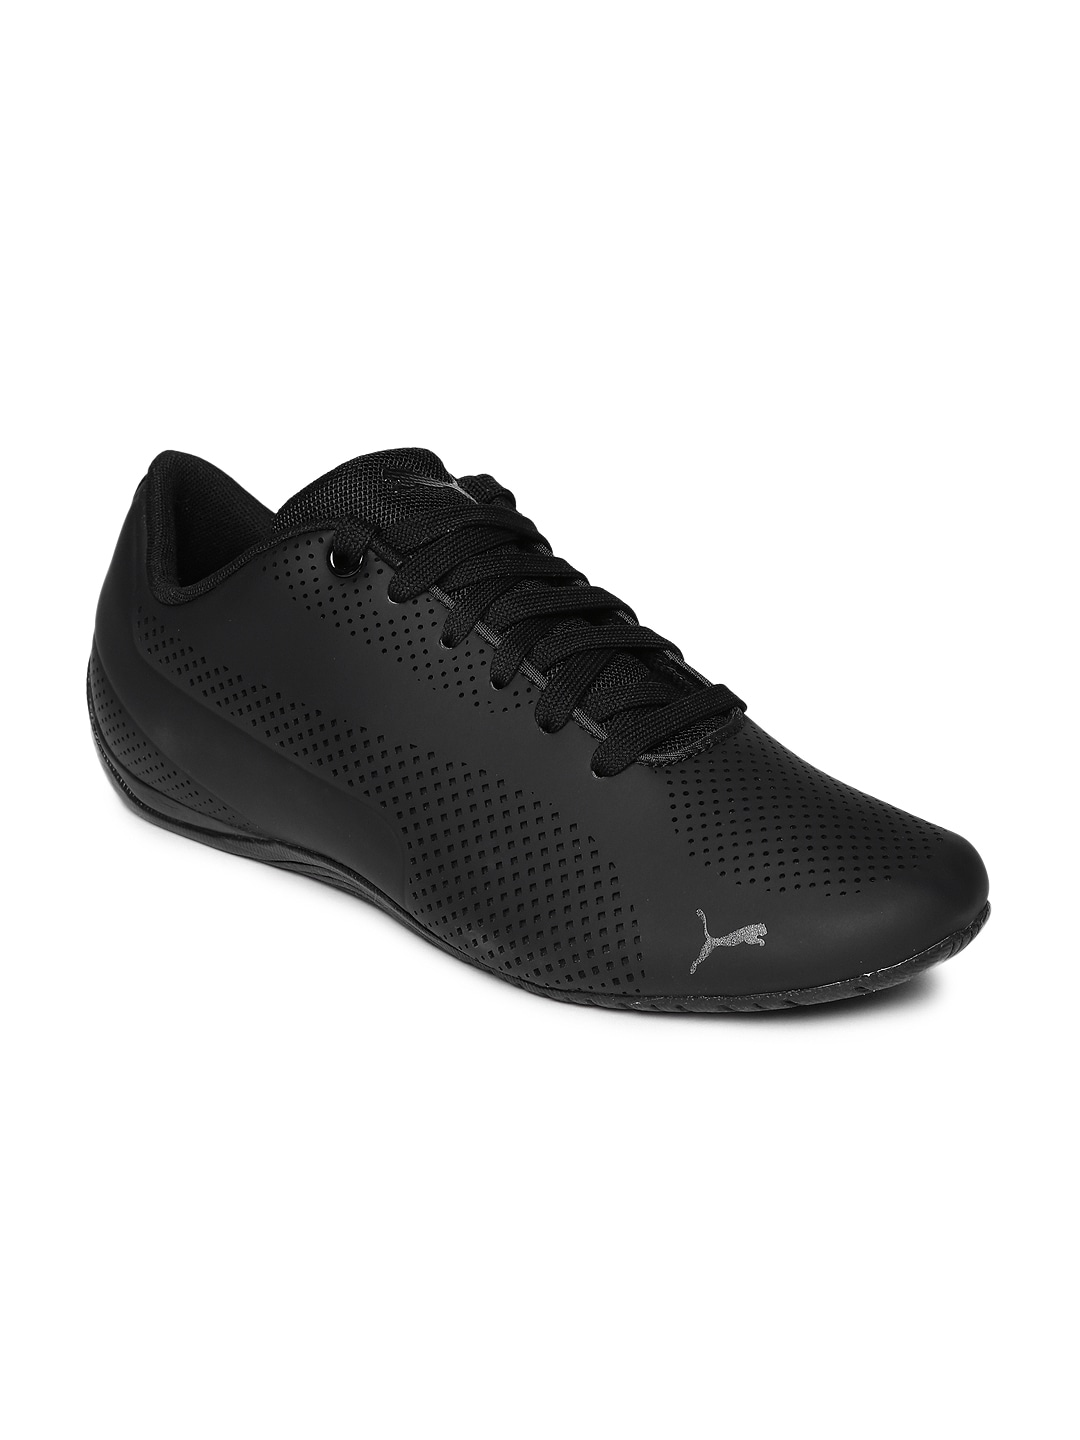 Puma Shoes - Buy Puma Shoes for Men   Women Online in India 356cf1040